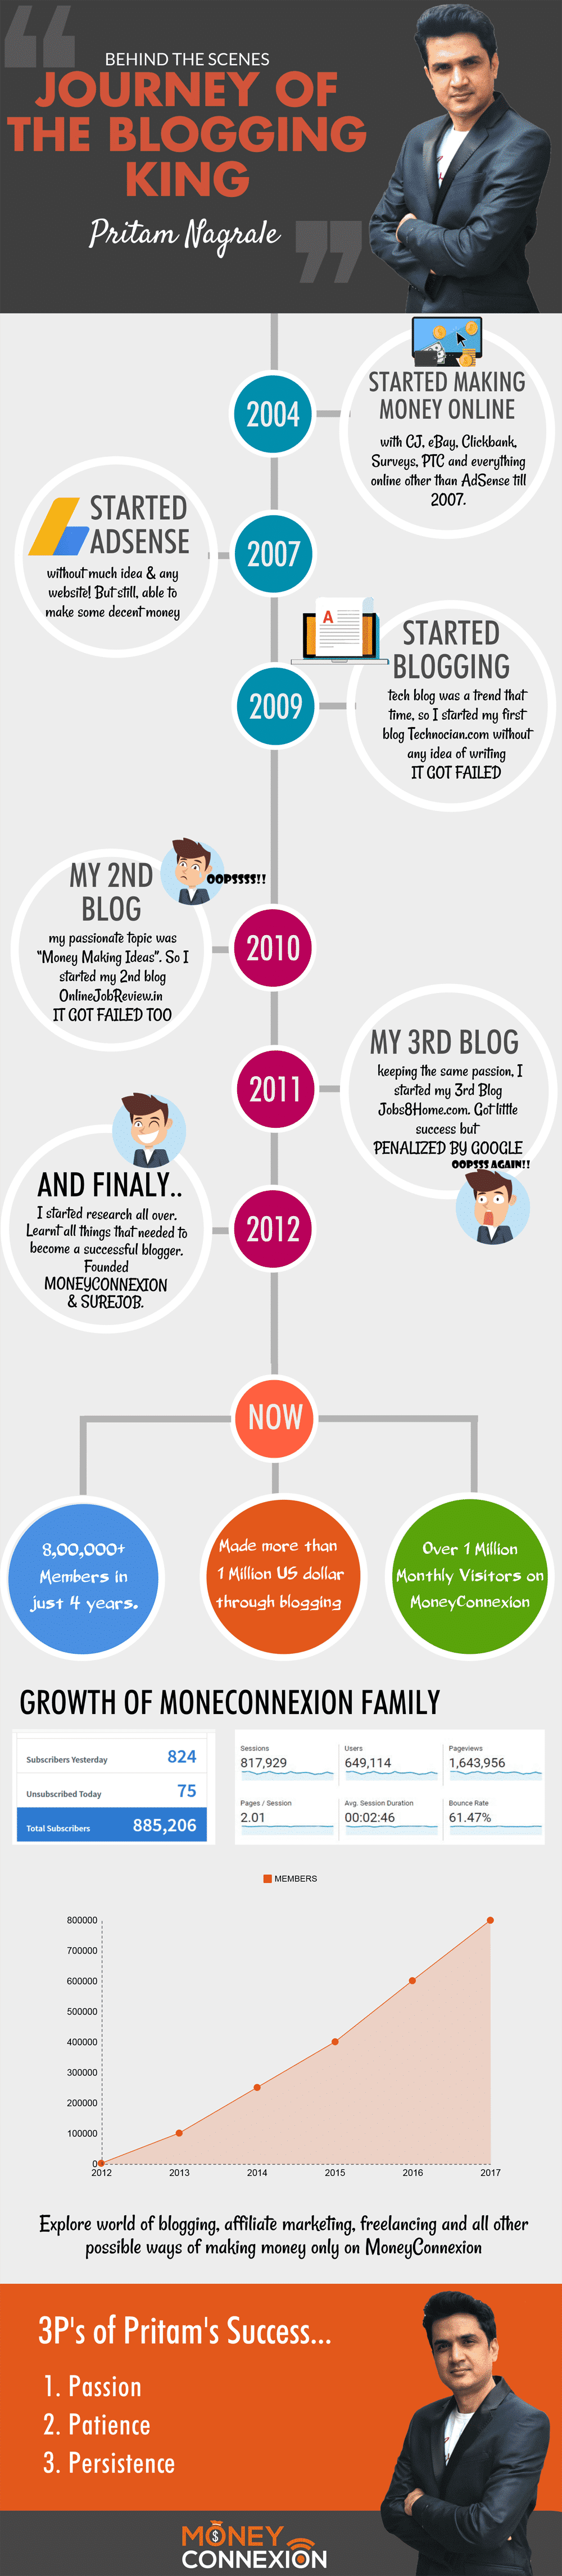 Pritam Nagrale Blogging Journey